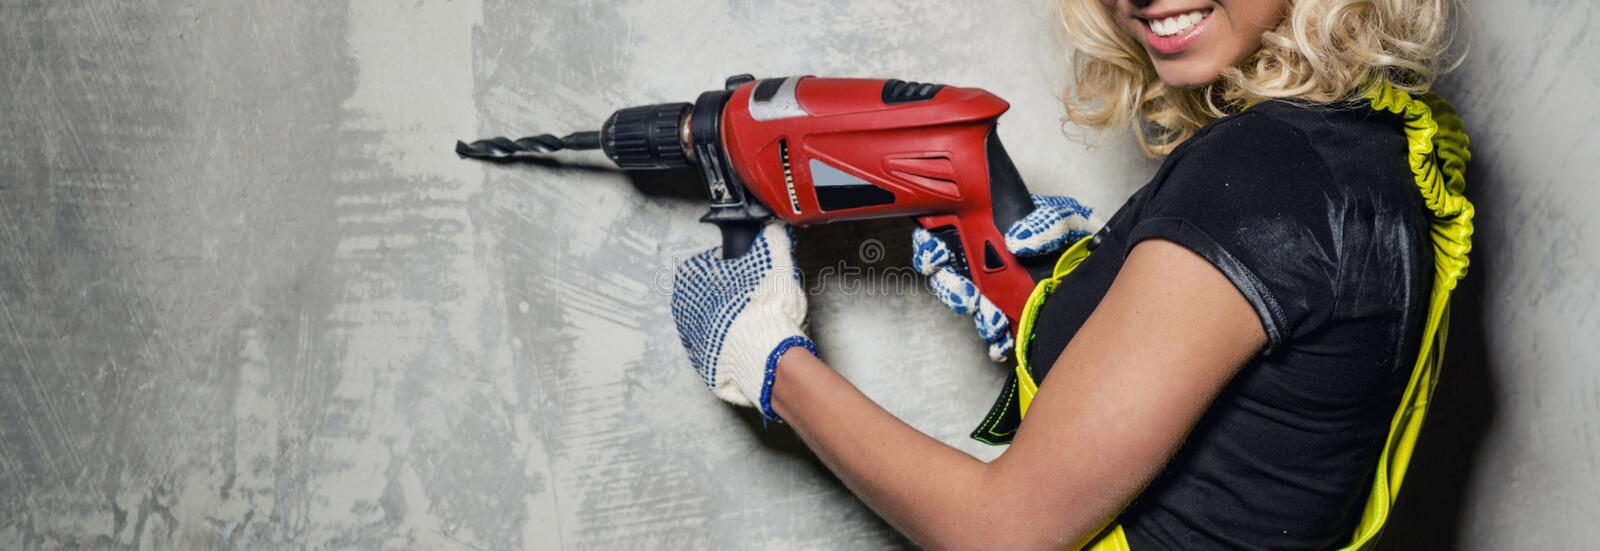 Attractive builder woman with a drill horizontal image stock photo